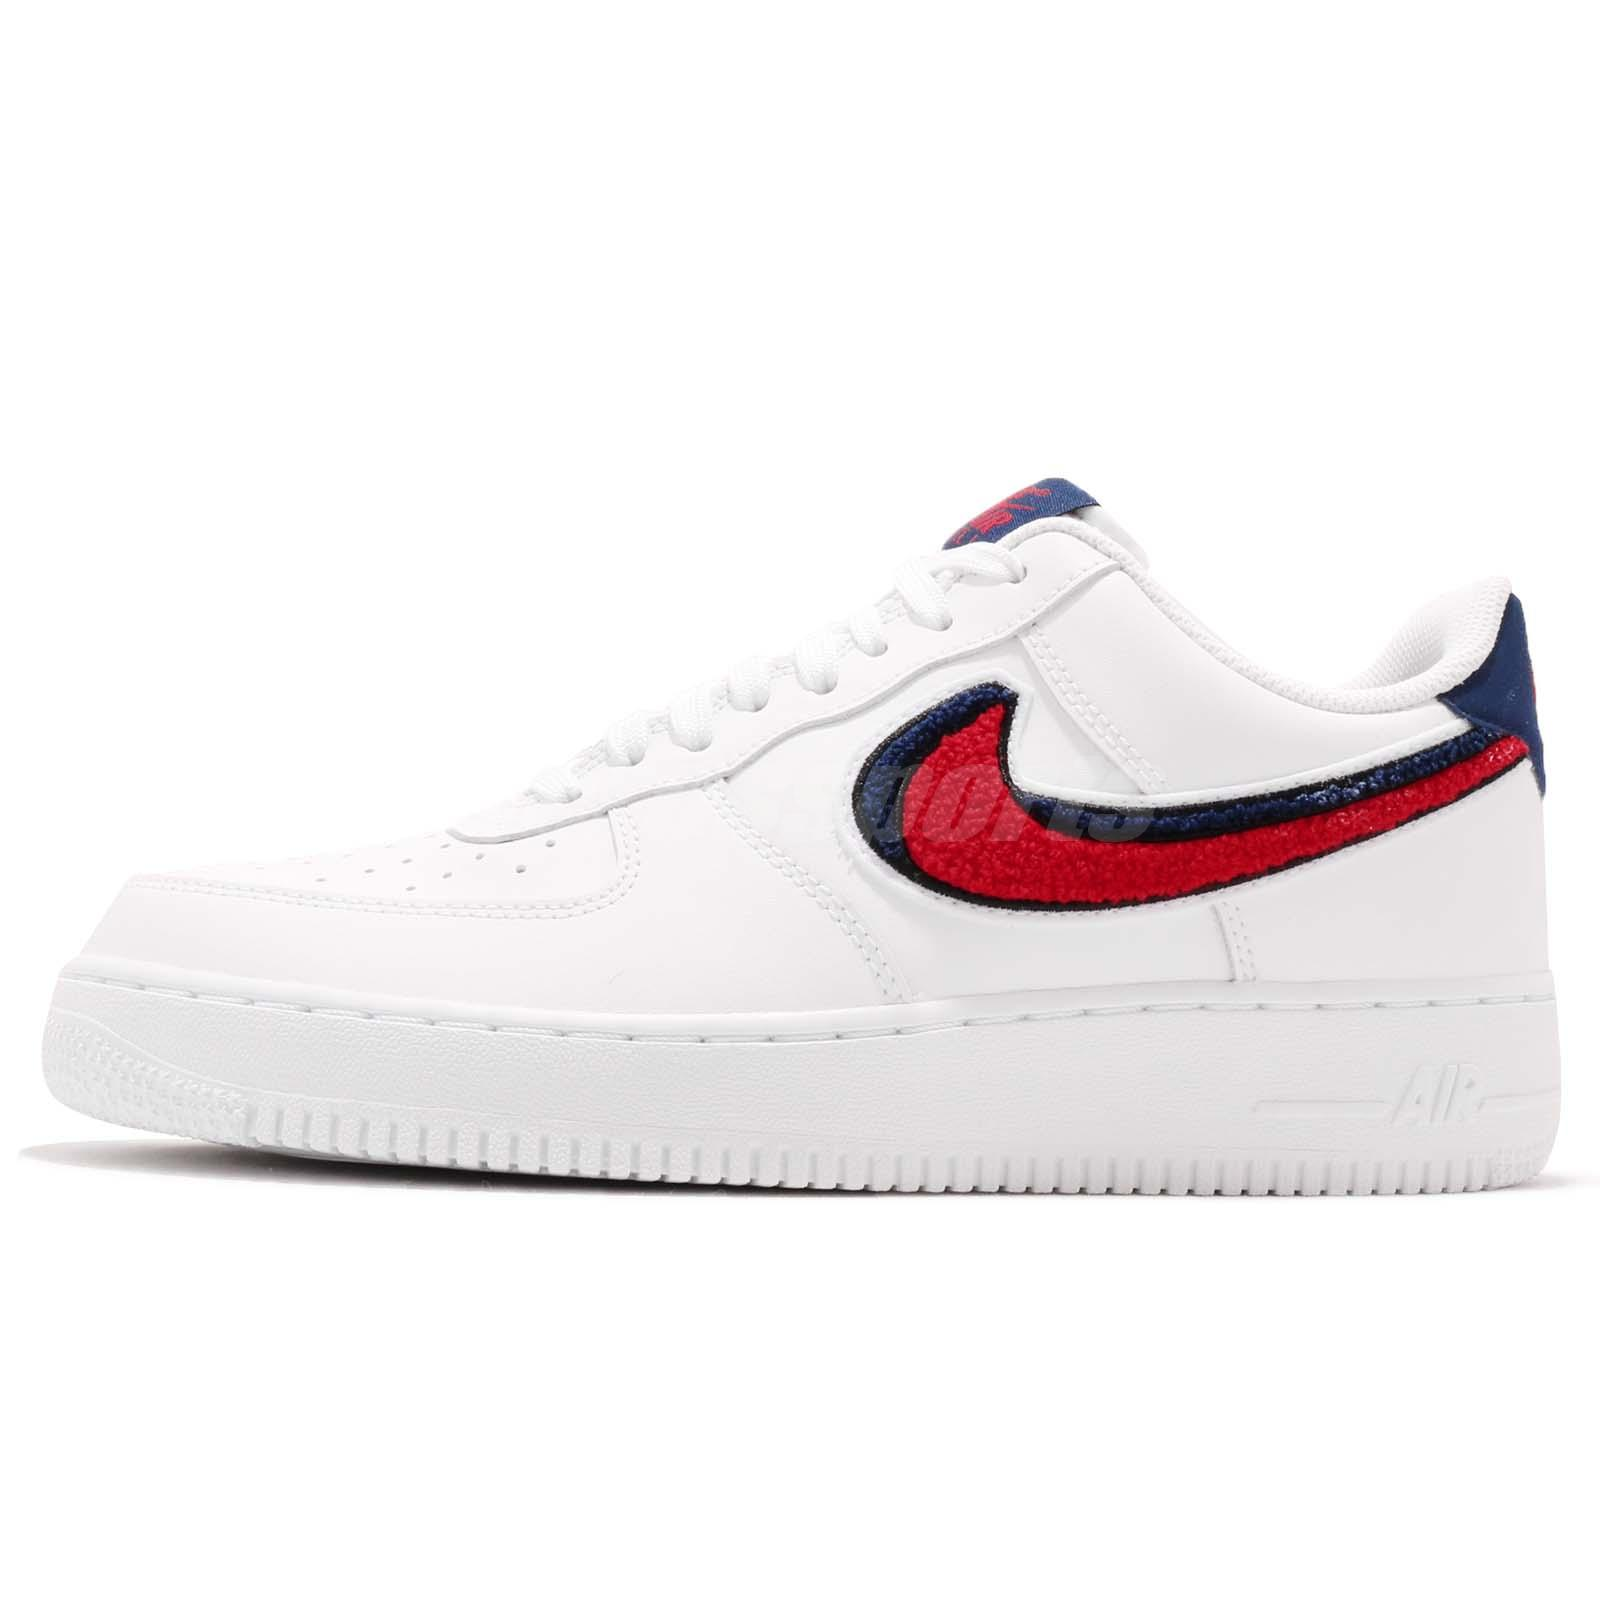 a58f3d9f444a ... canada nike air force 1 07 lv8 af1 chenille swoosh white red blue men  shoes 823511